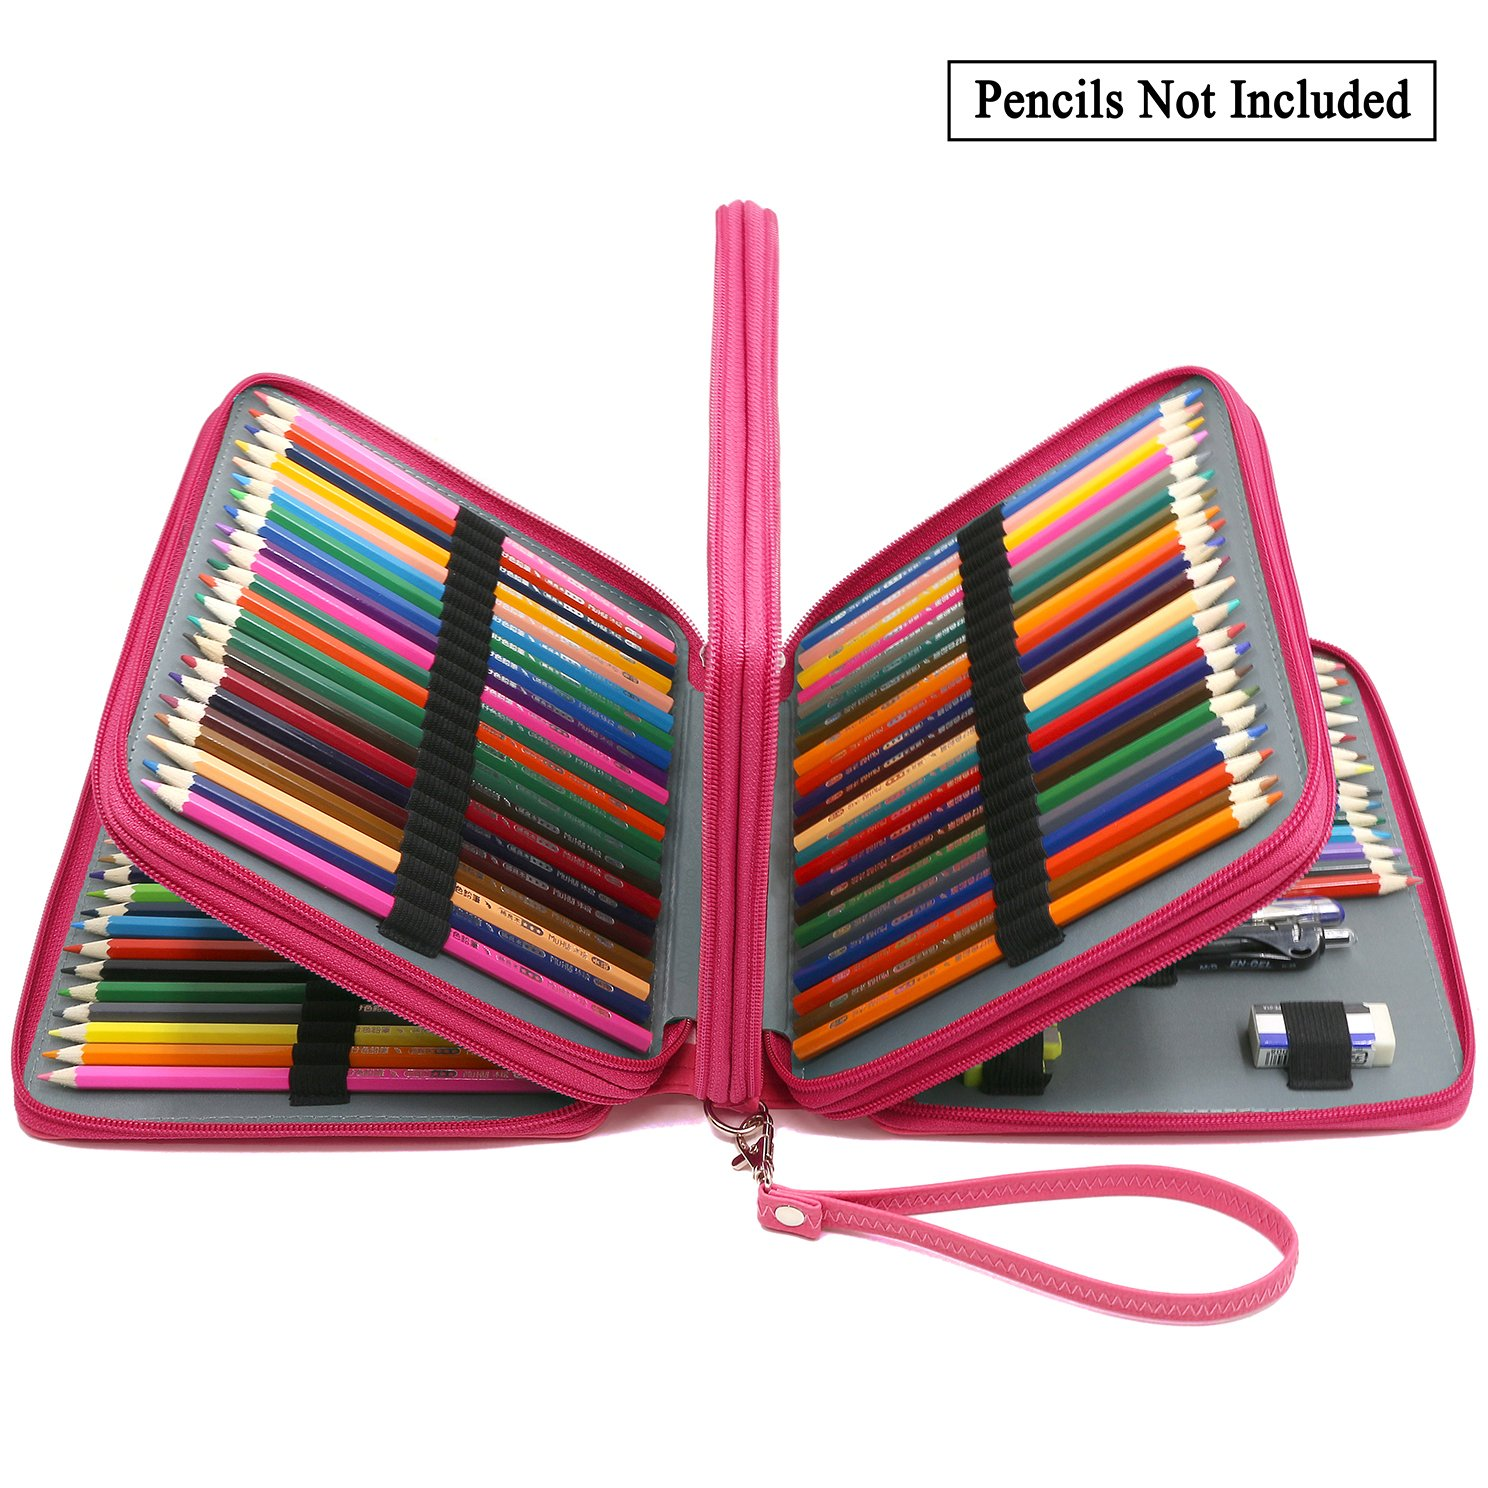 ADVcer 160 Slots Pencil Case - PU Leather Large Capacity Zipper Pen Bag with Hand Strap for Prismacolor Crayola Colored Pencil, Watercolor Pencil, Marco Pen, Gel Pen, Makeup Brush and Sharpener (Pink)